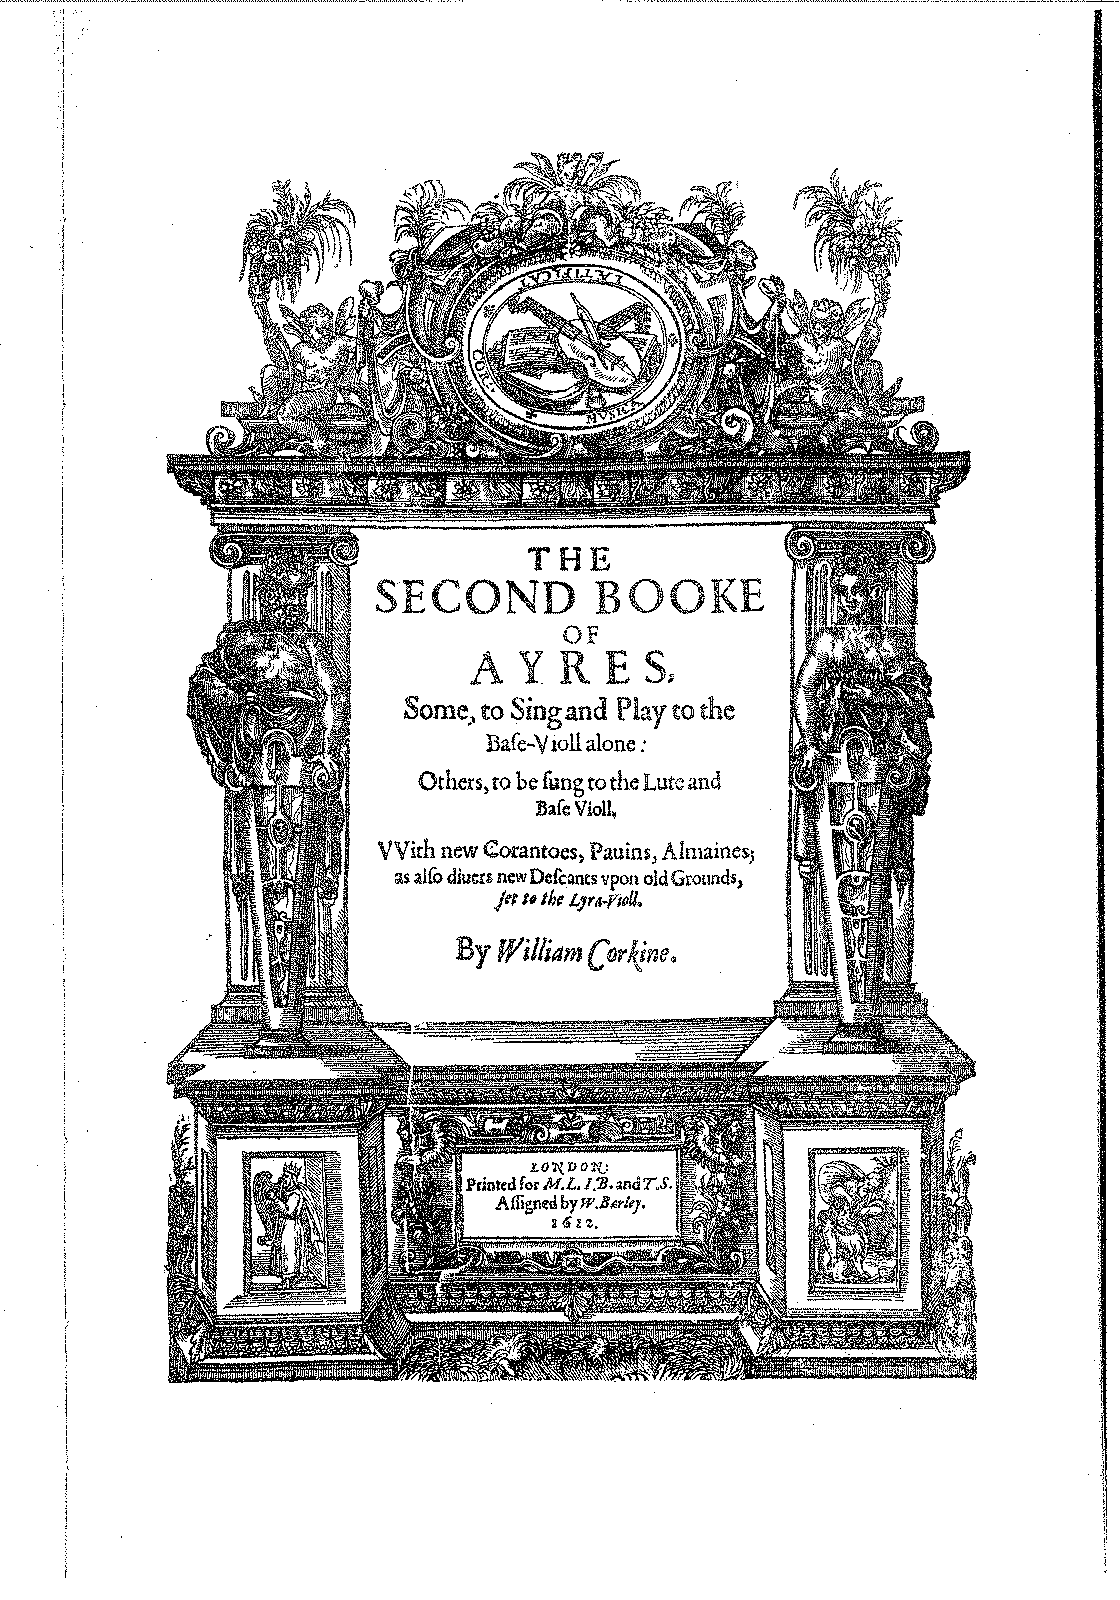 PMLP203017-The scond booke of ayres, some to ting and play to the base-violl alone, others, to be sung to the lute and base violl... (ed. M.L.I.B, T.S., W. Barley, London 1612).pdf